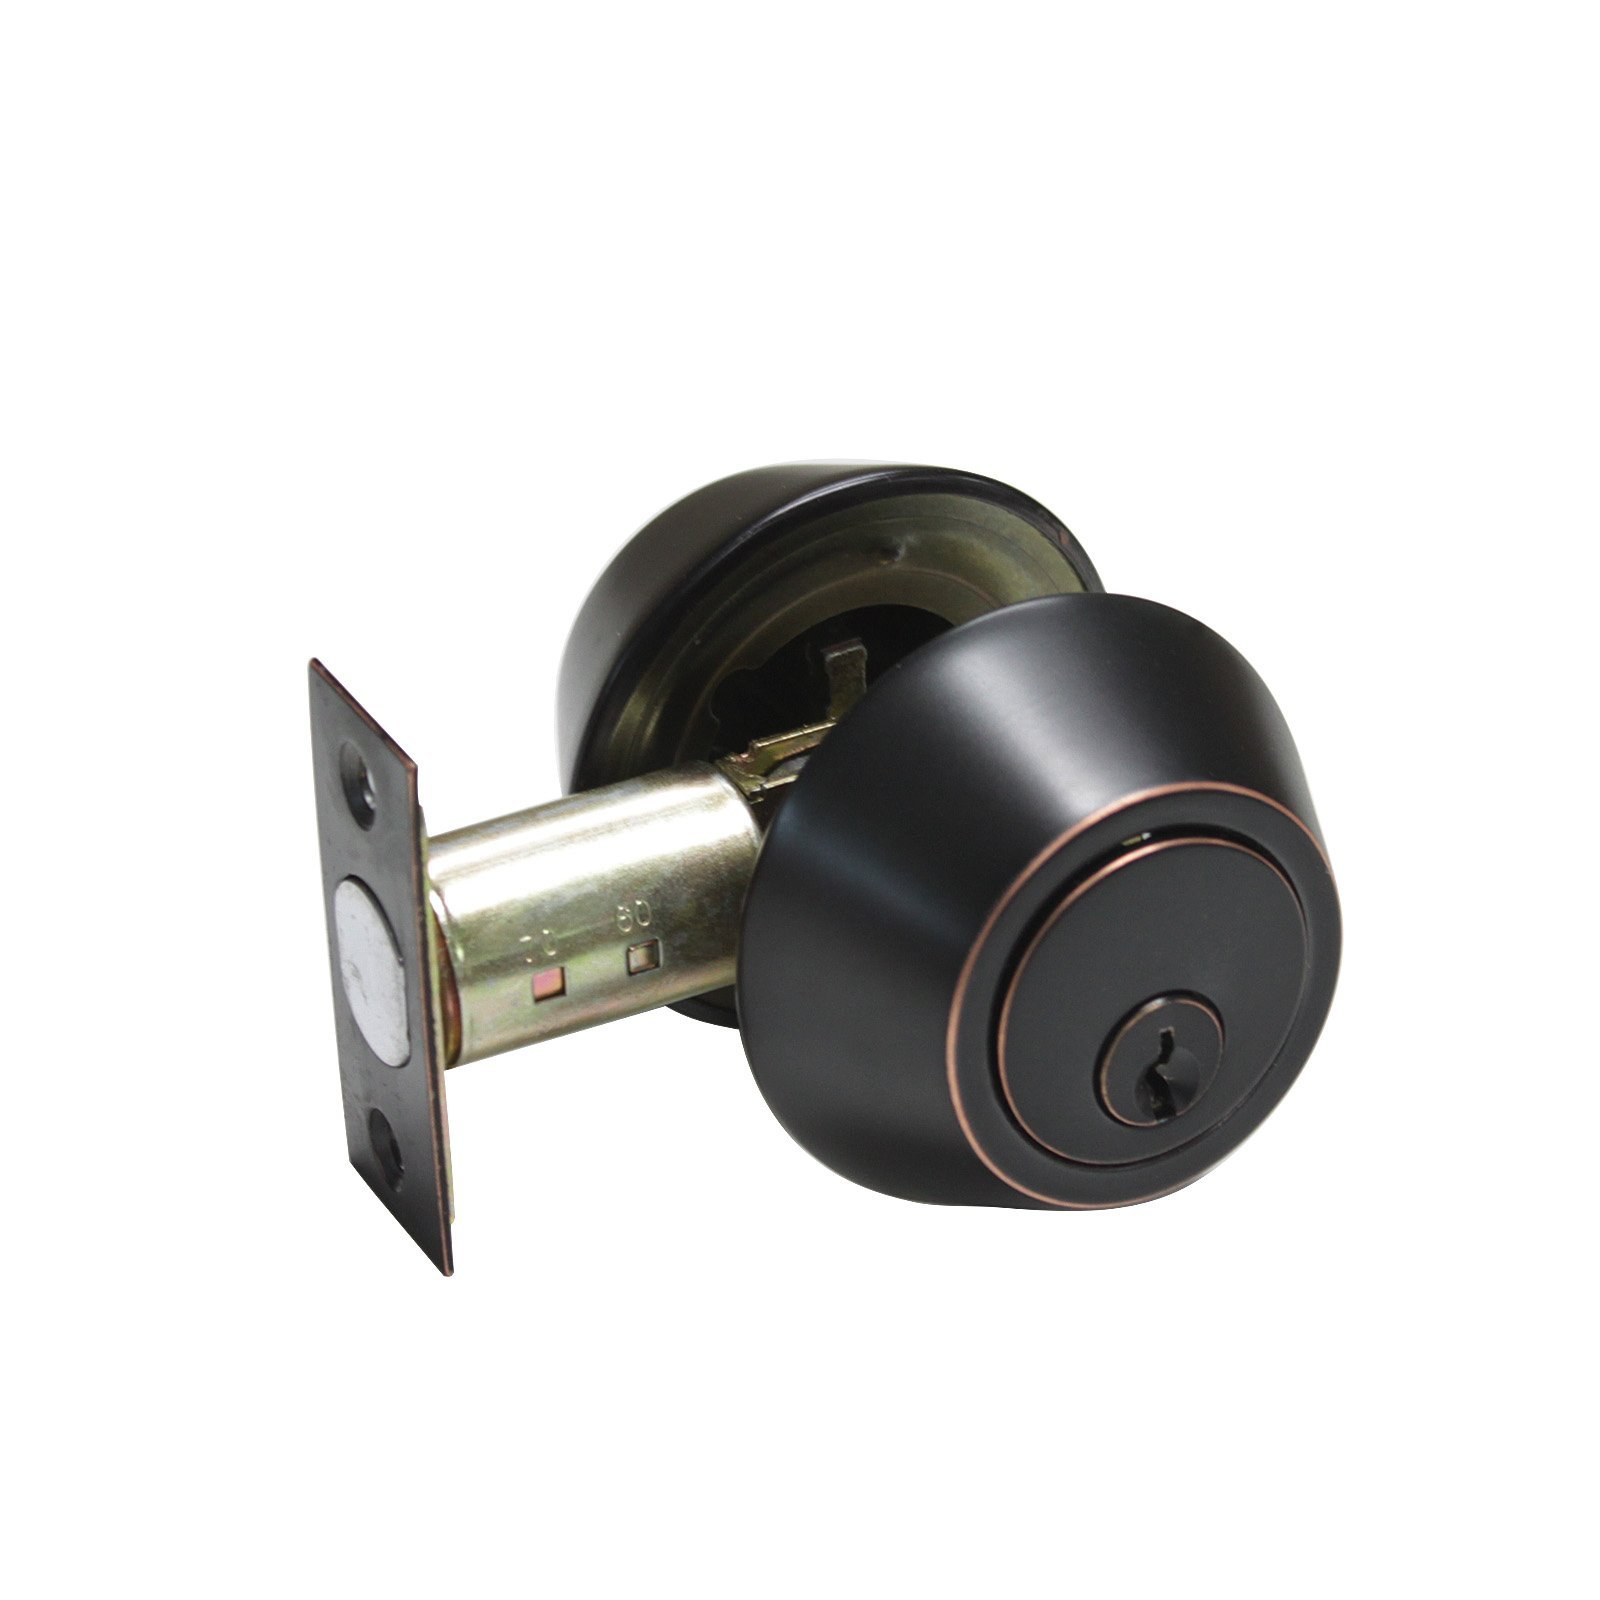 Gobrico Double Cylinder Deadbolt Keyed on Both Sides Home Door Locking Security Round Knob Lock Oil Rubbed Bronze 5Pack